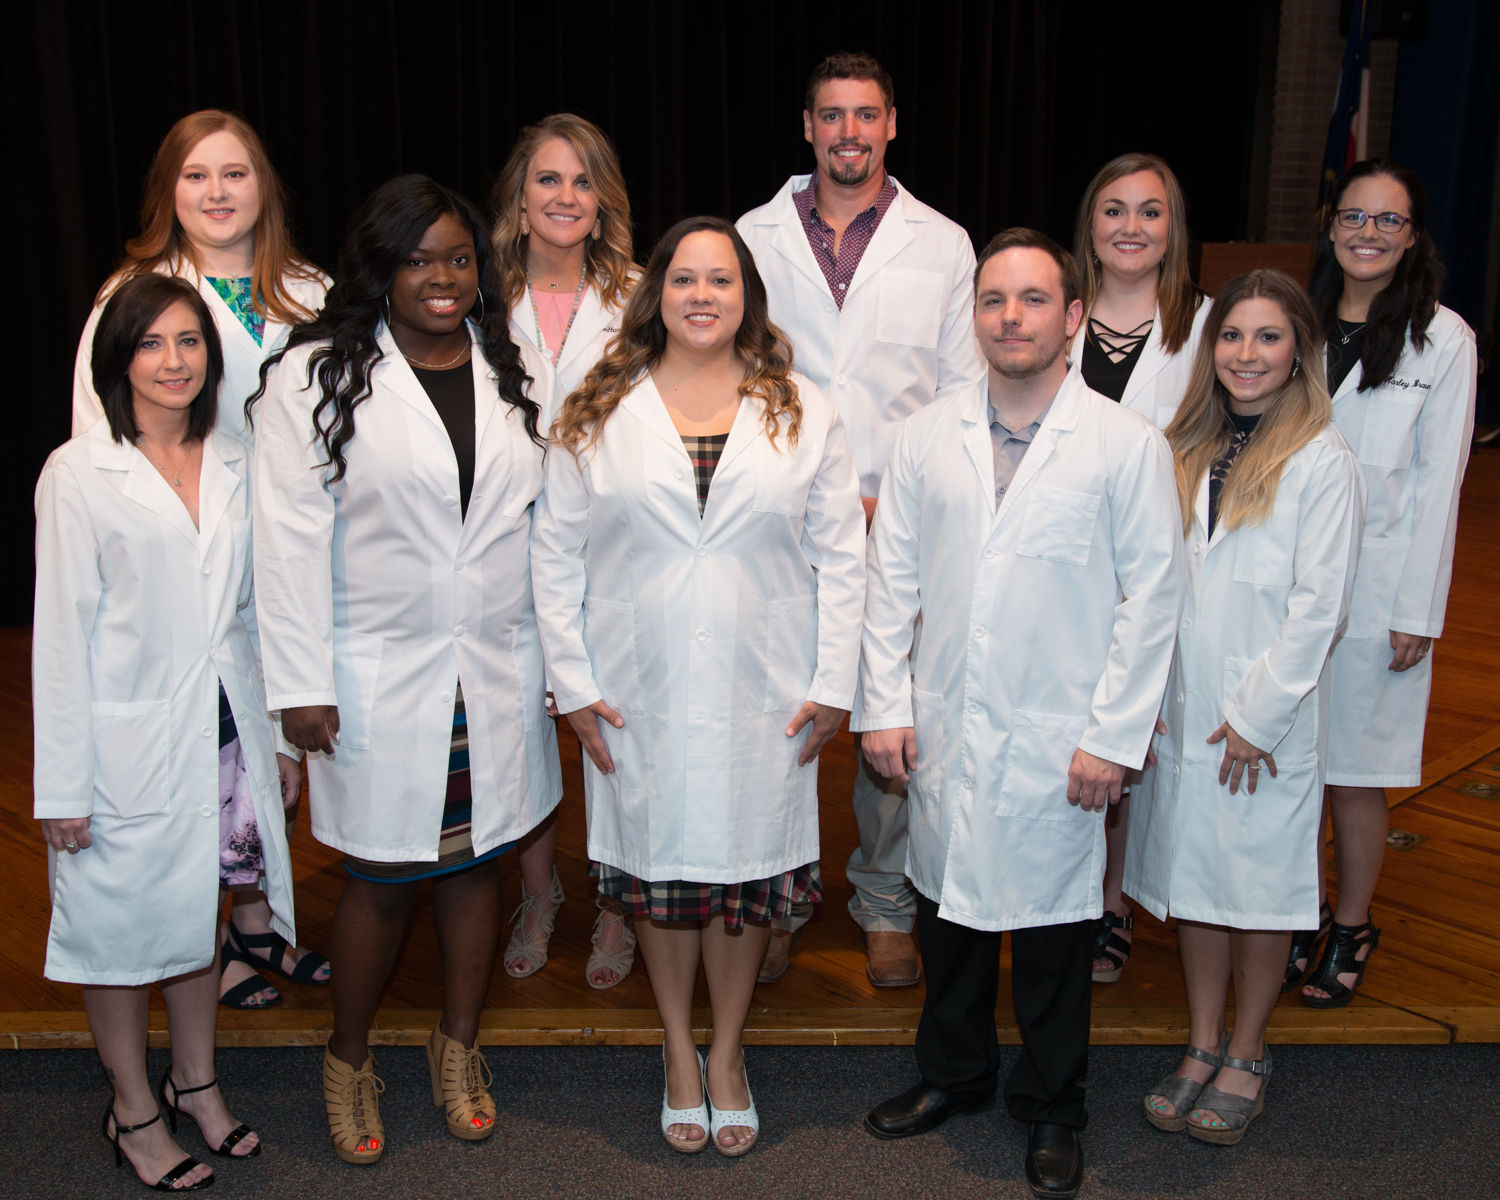 WCJC RADIOLOGIC TECHNOLOGY PROGRAM GRADUATES